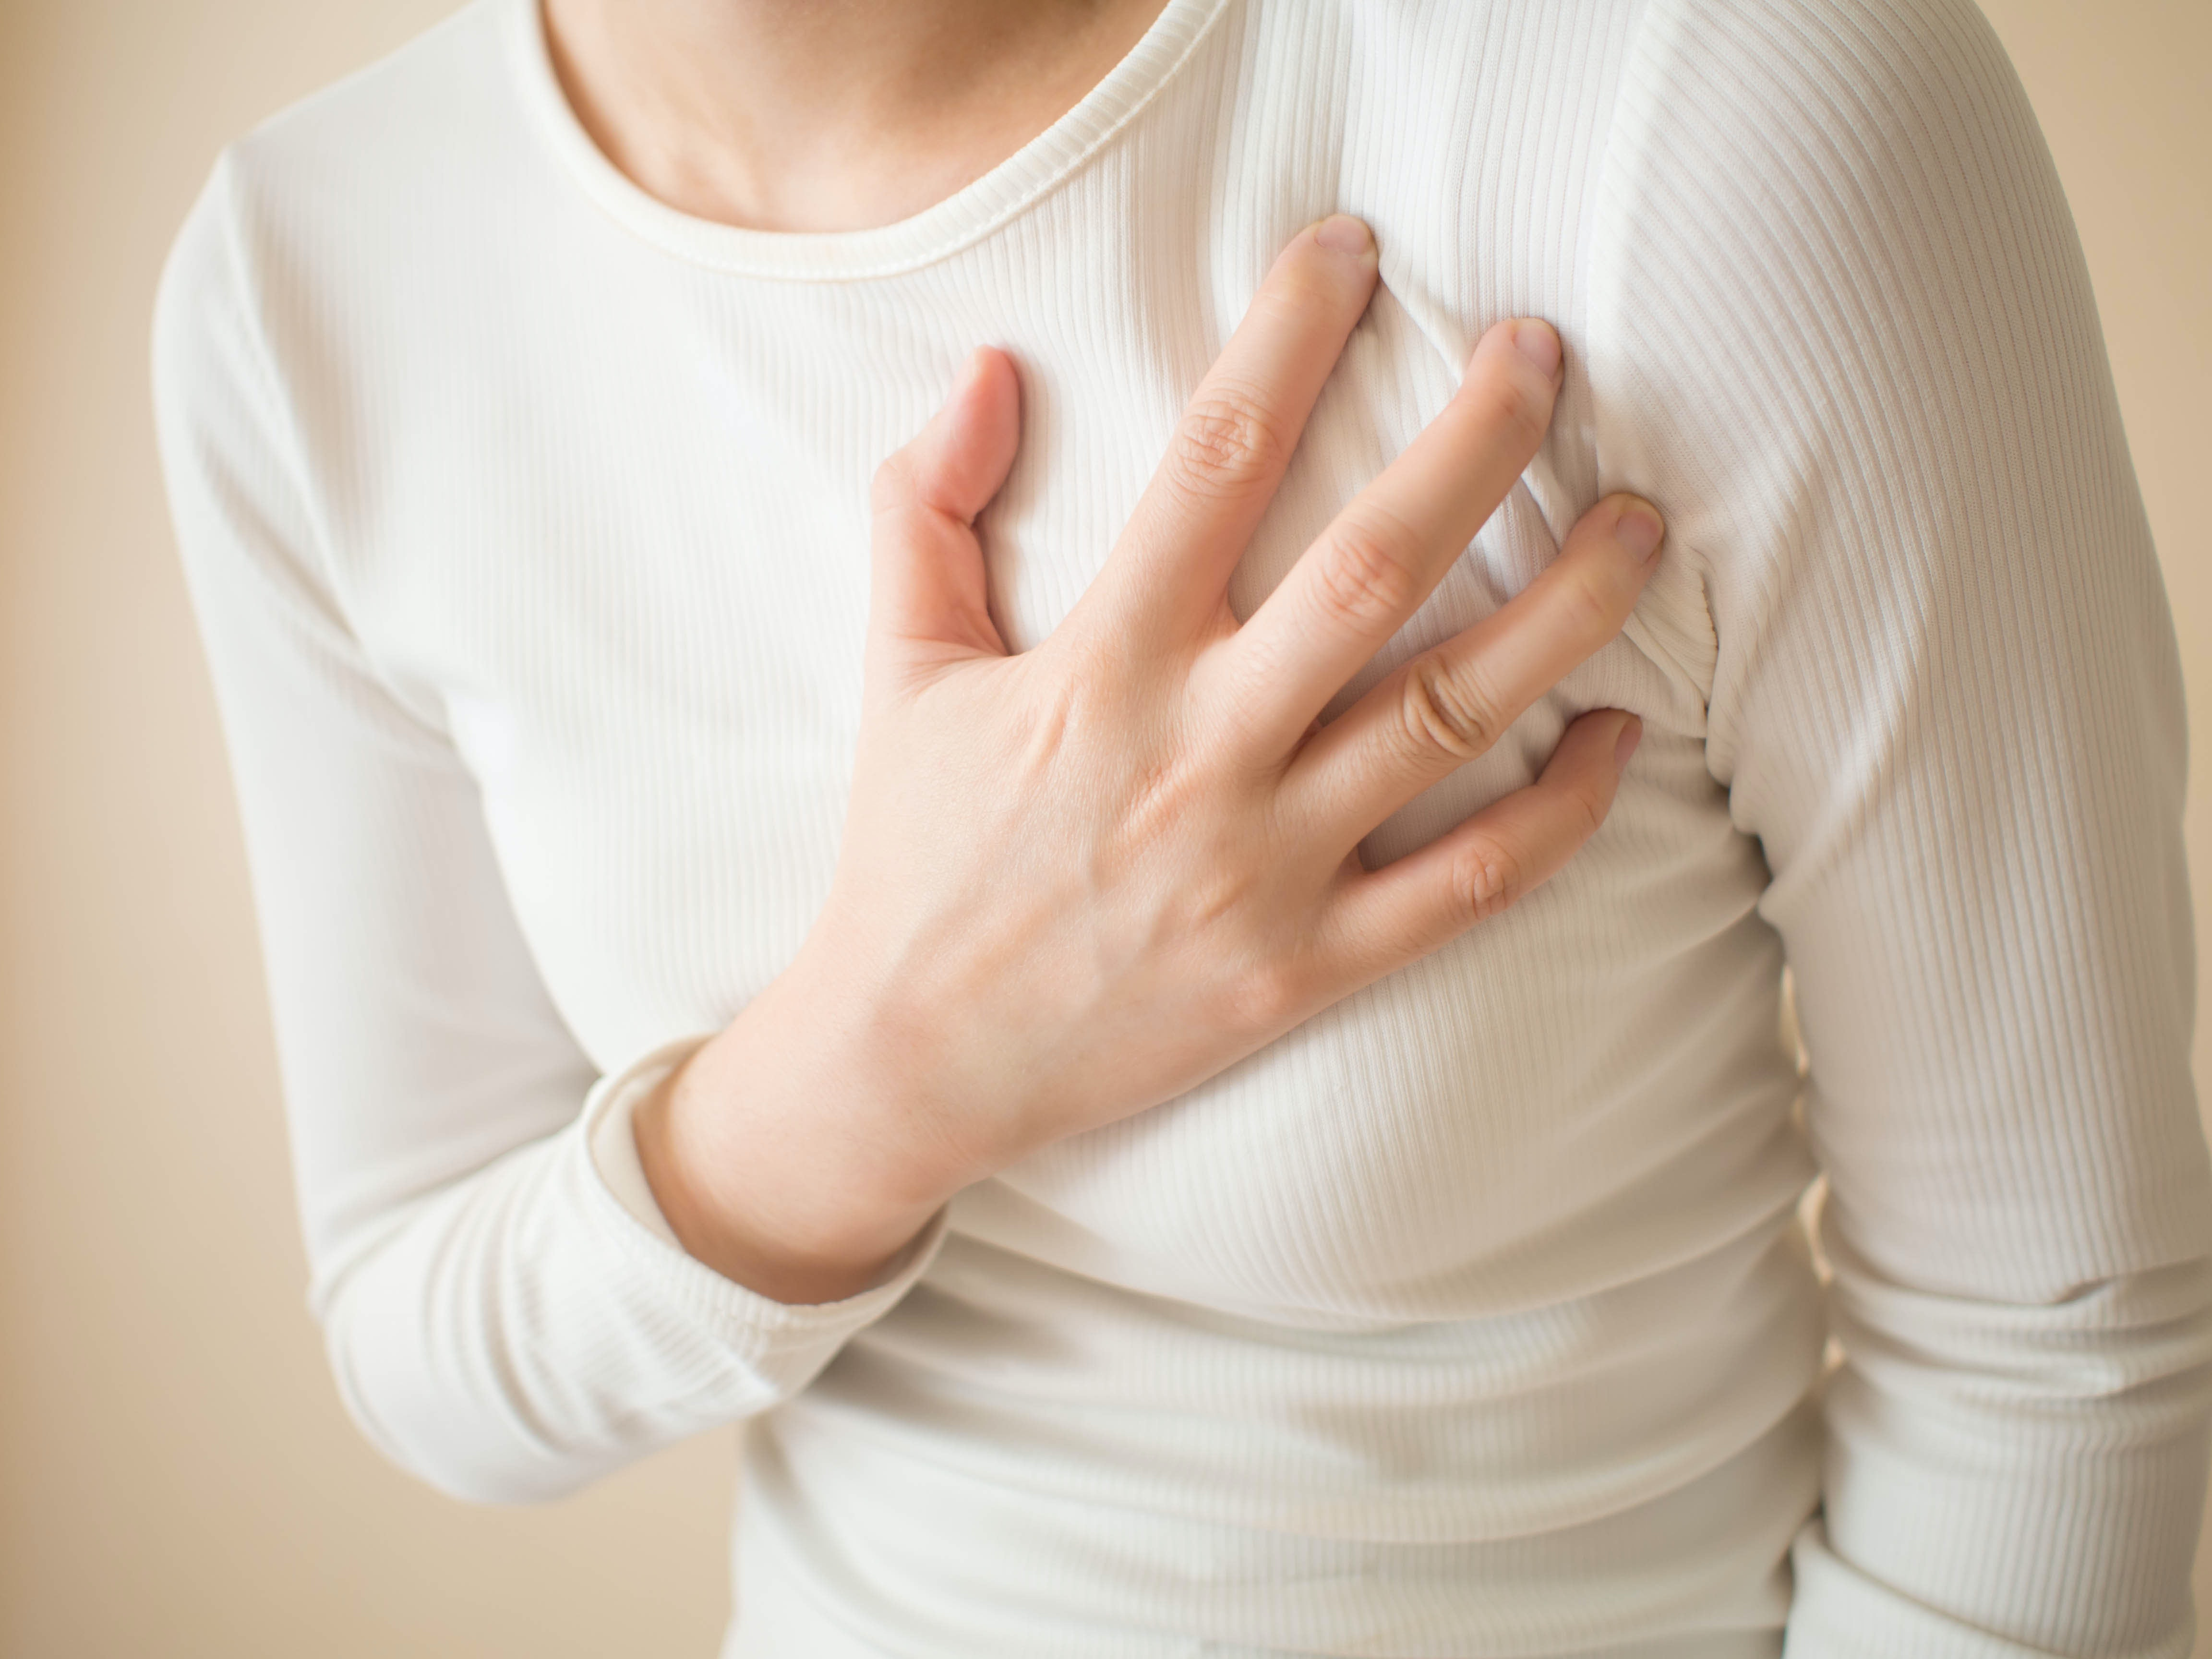 An image depicting a person suffering from breast pain symptoms